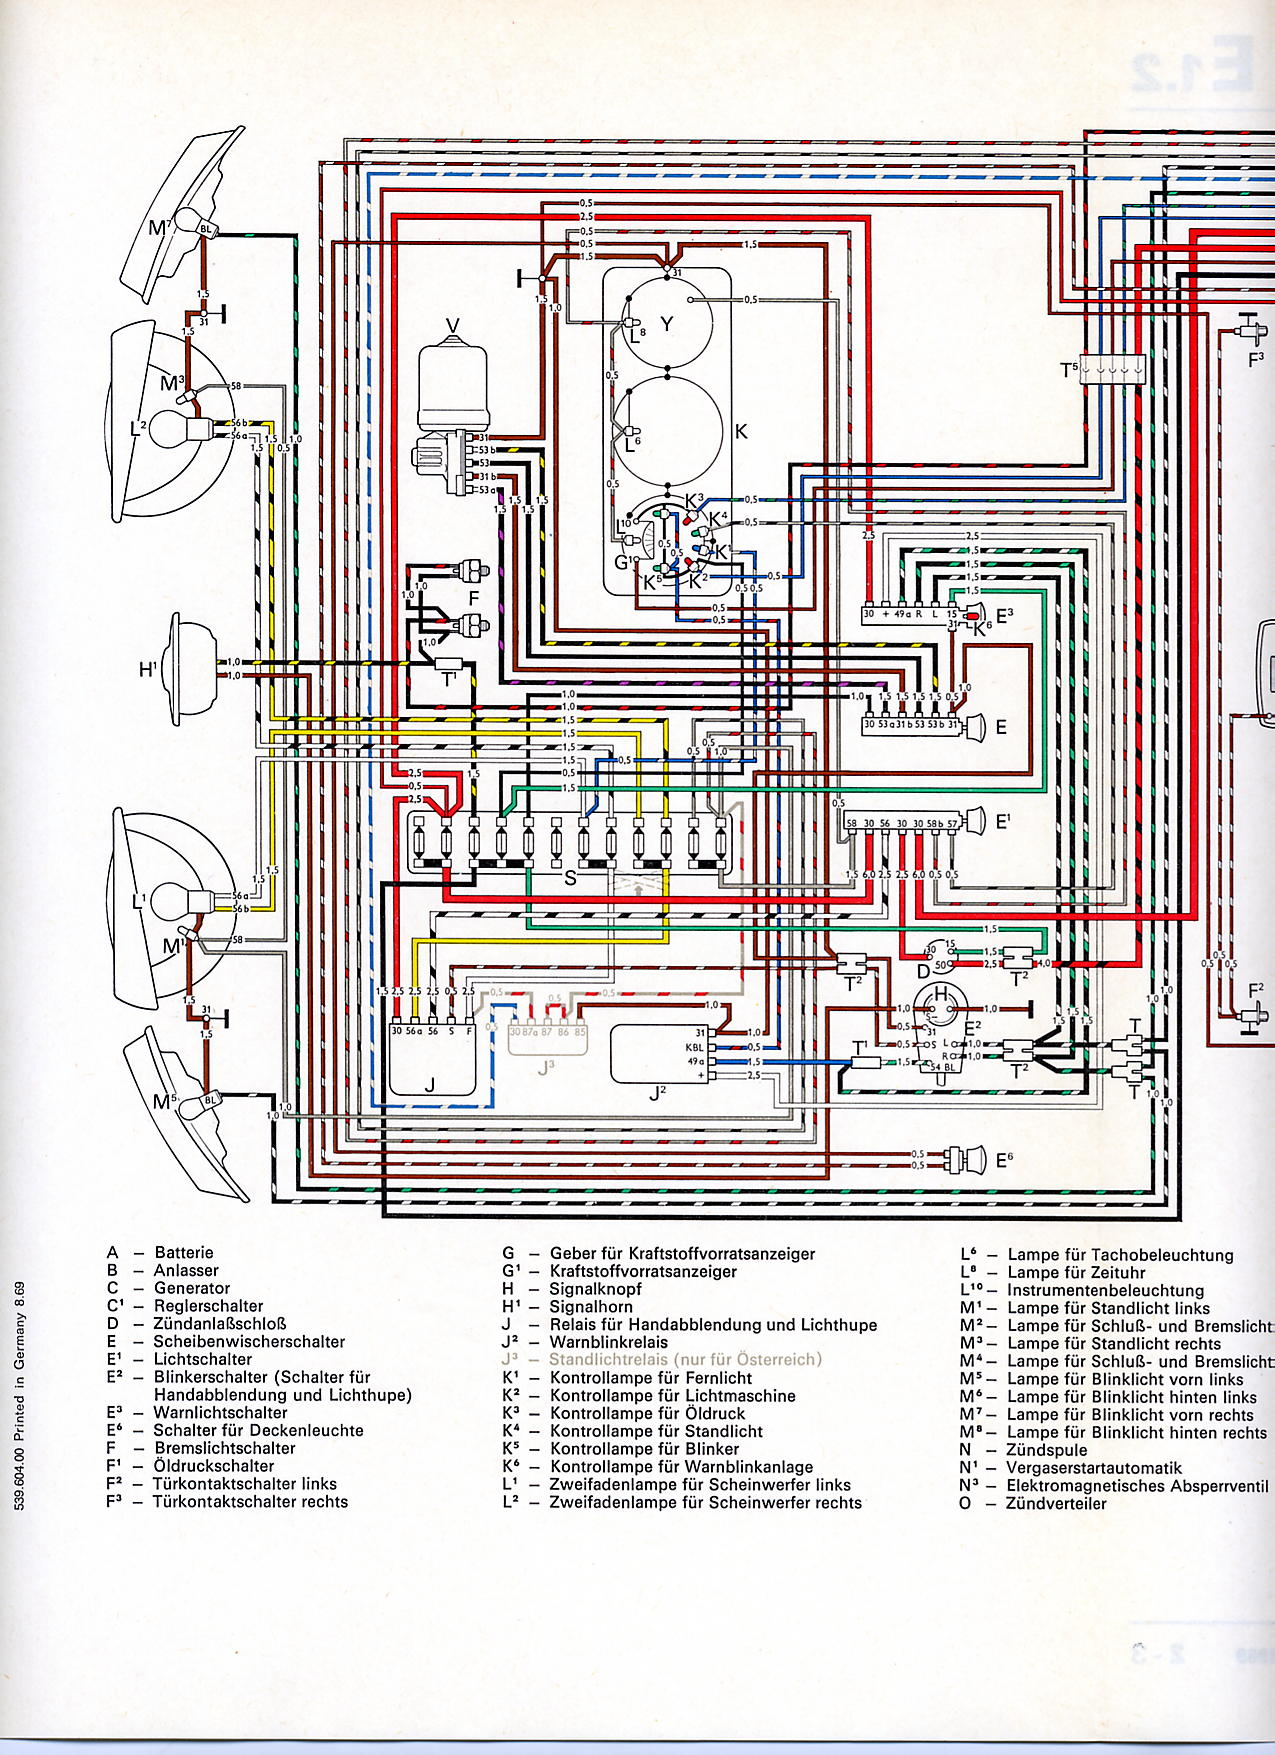 1993 Vw Super Beetle Wiring Diagram Start Building A 1971 Auto Shift Wire Vintagebus Com Bus And Other Diagrams Rh